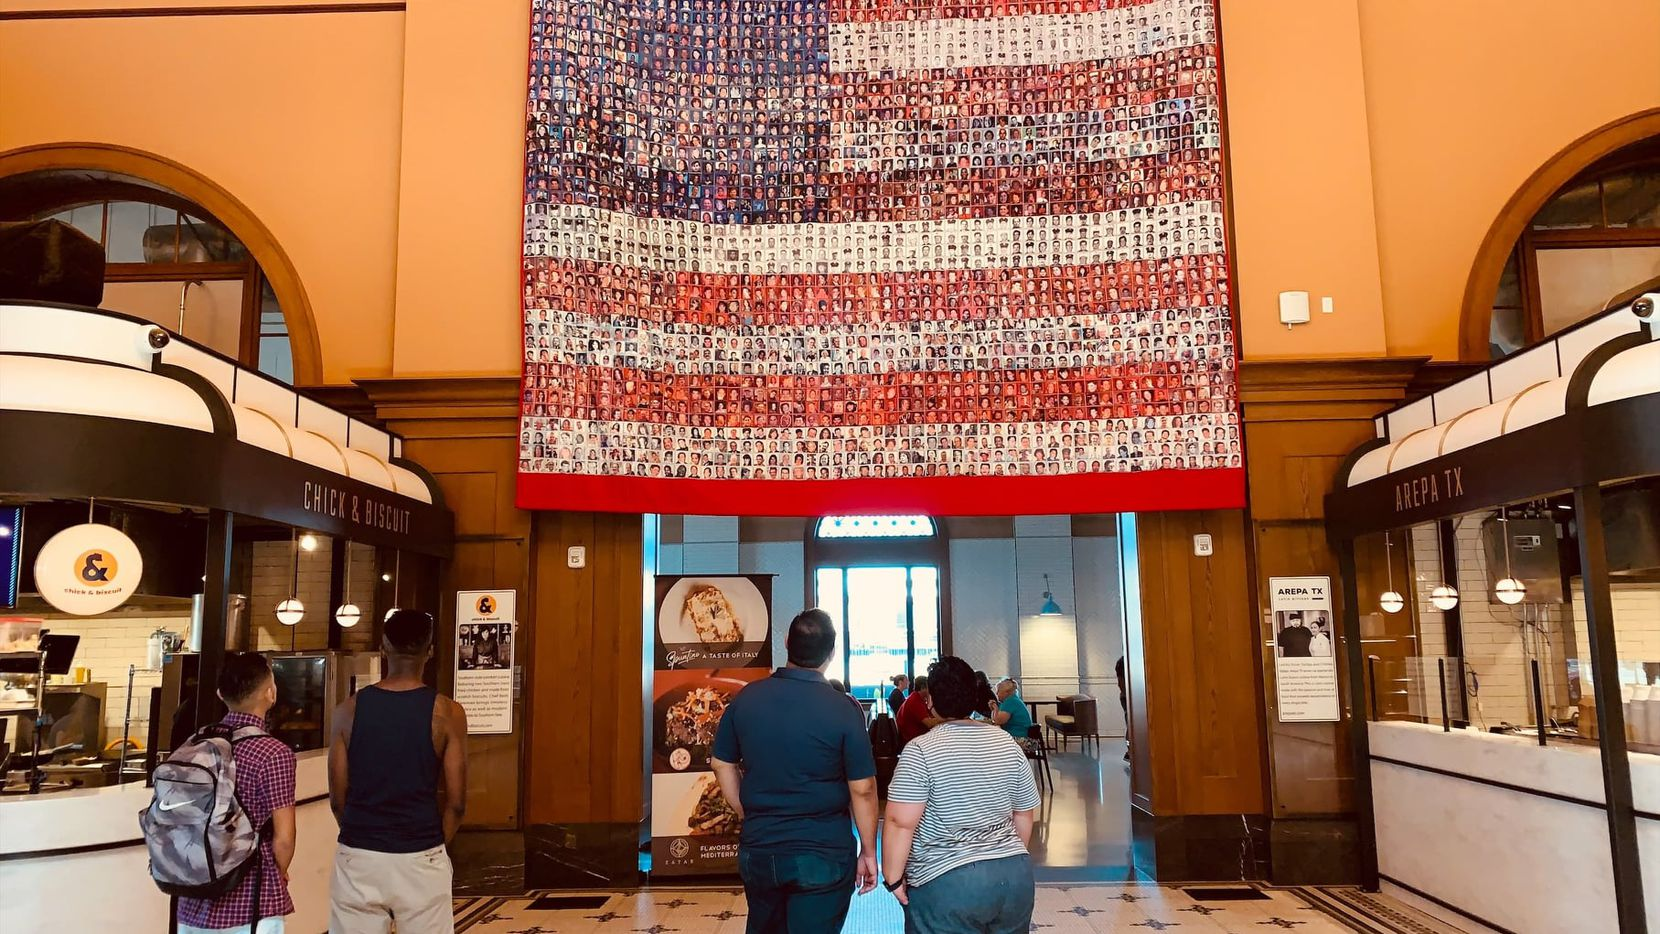 A quilt commemorating 9/11 victims hangs in Harvest Hall this month.